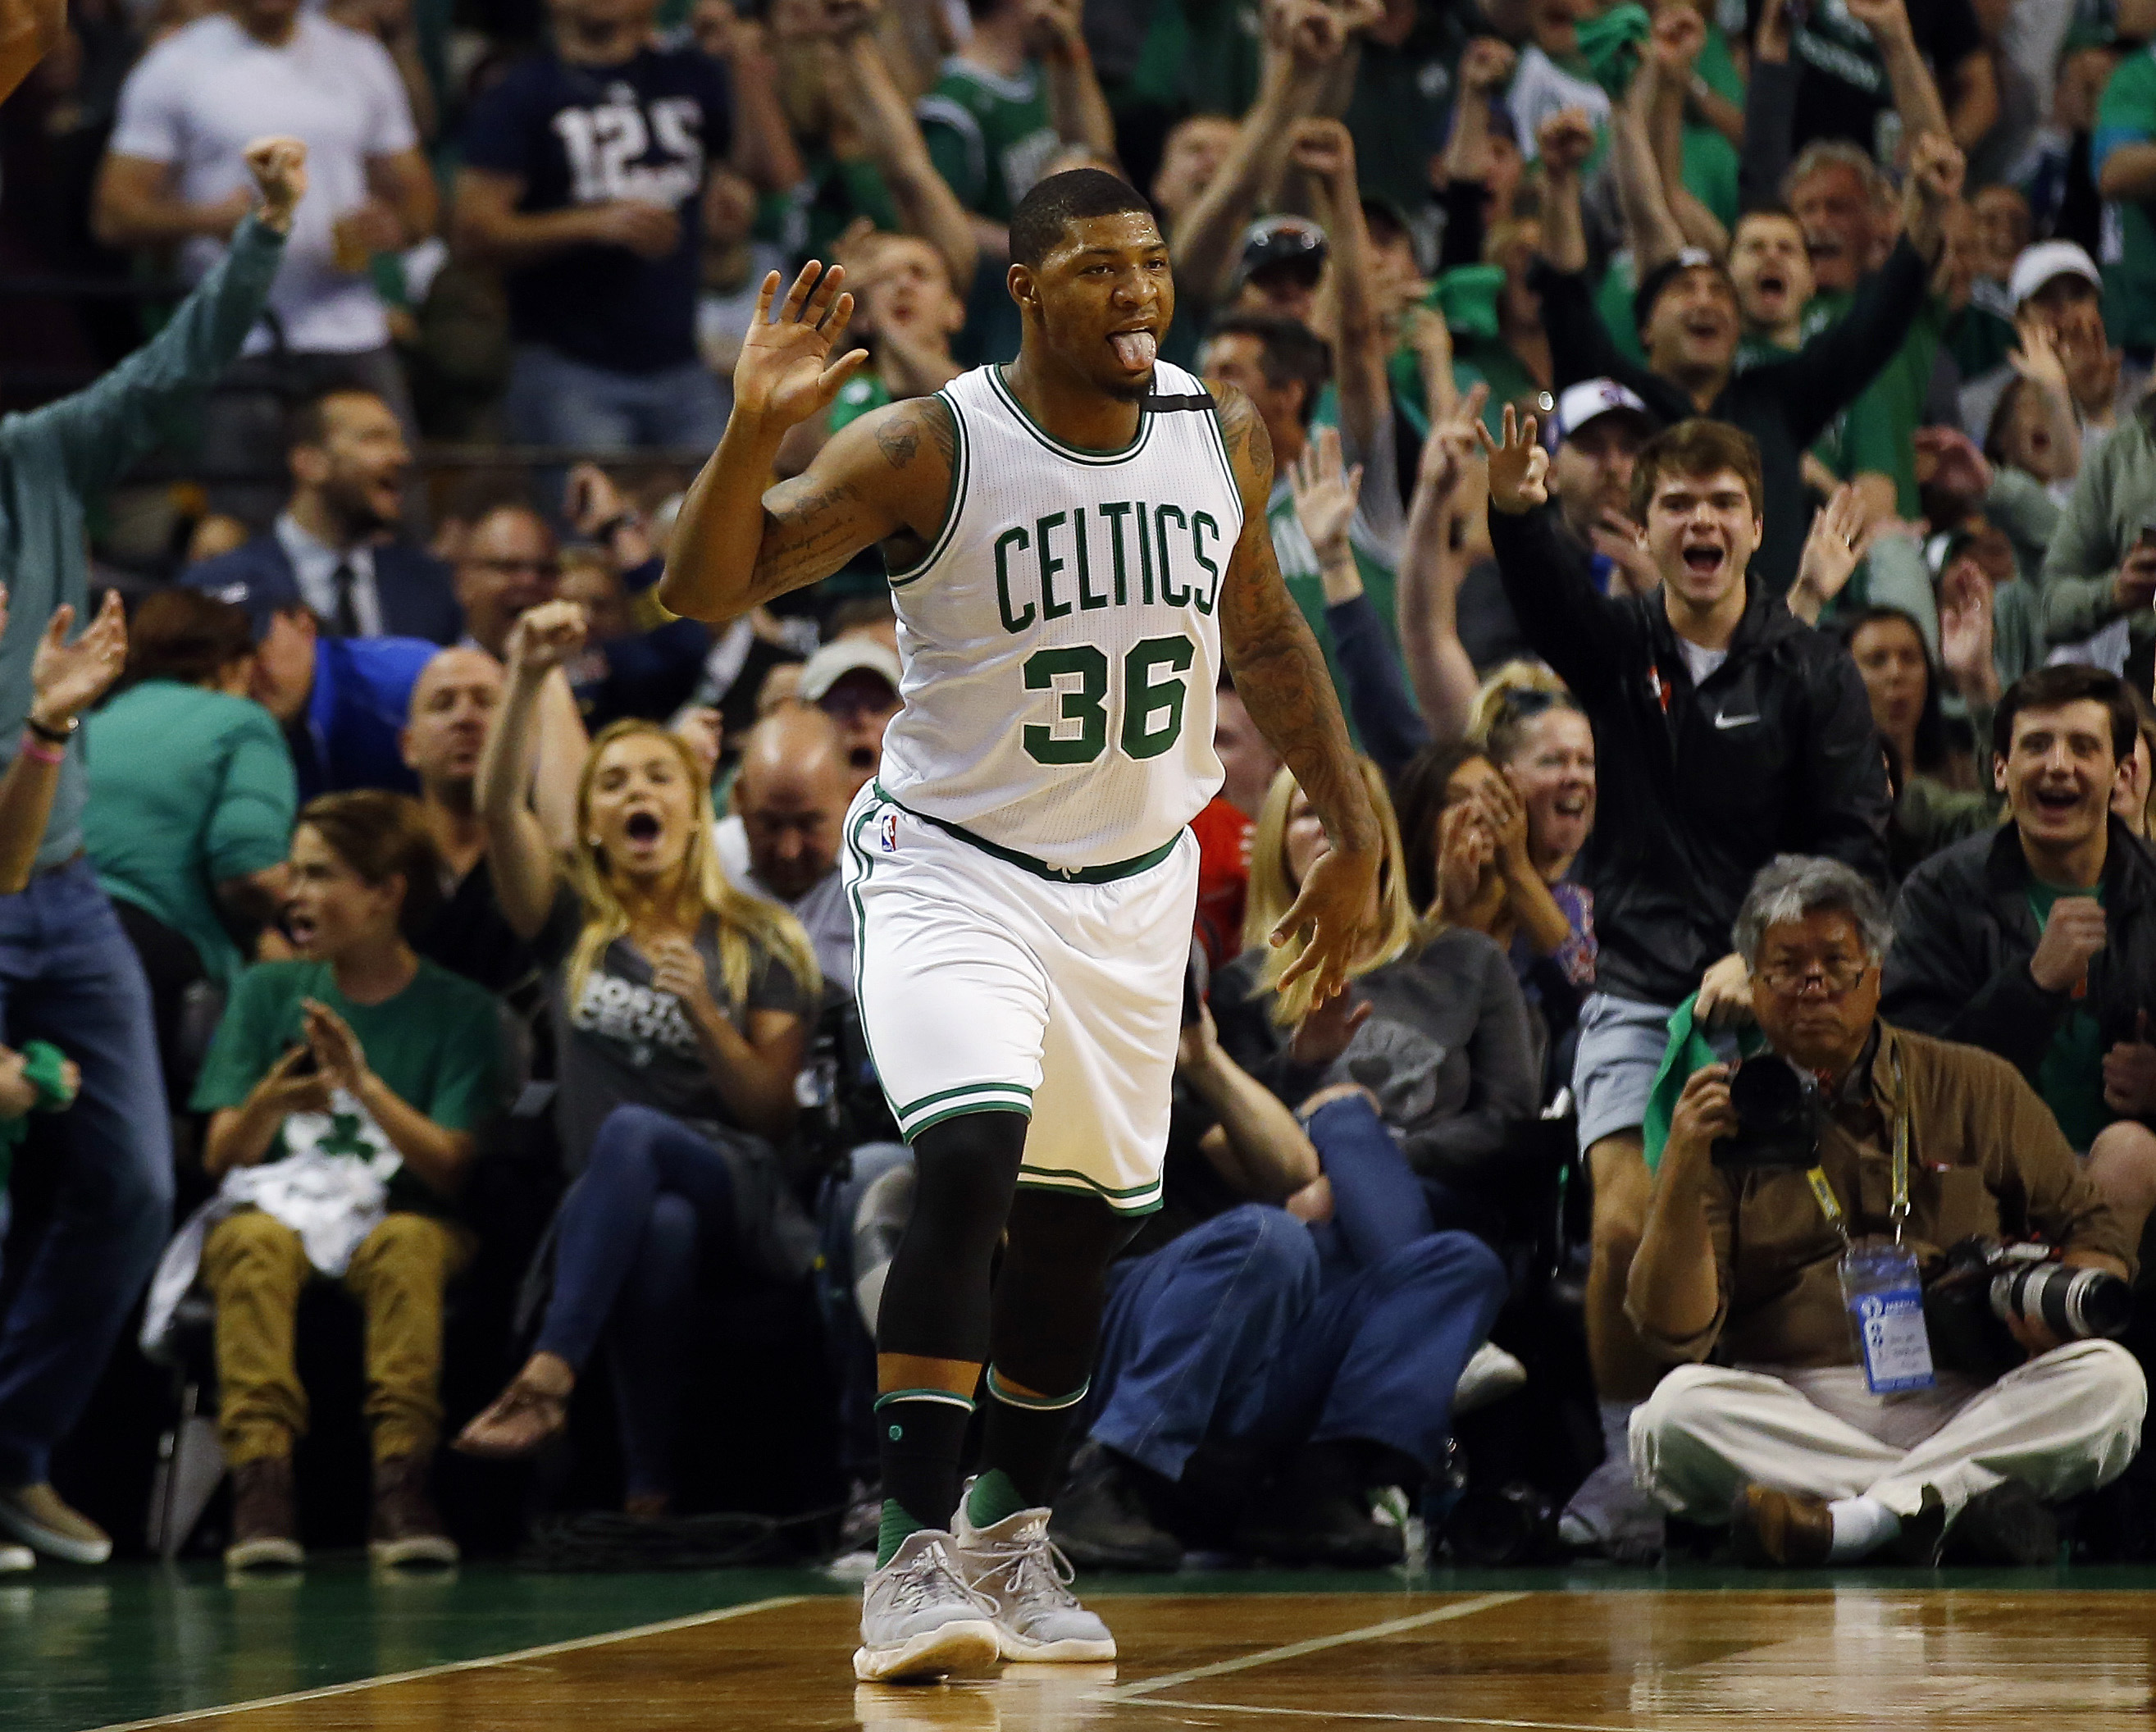 10037241-nba-playoffs-washington-wizards-at-boston-celtics